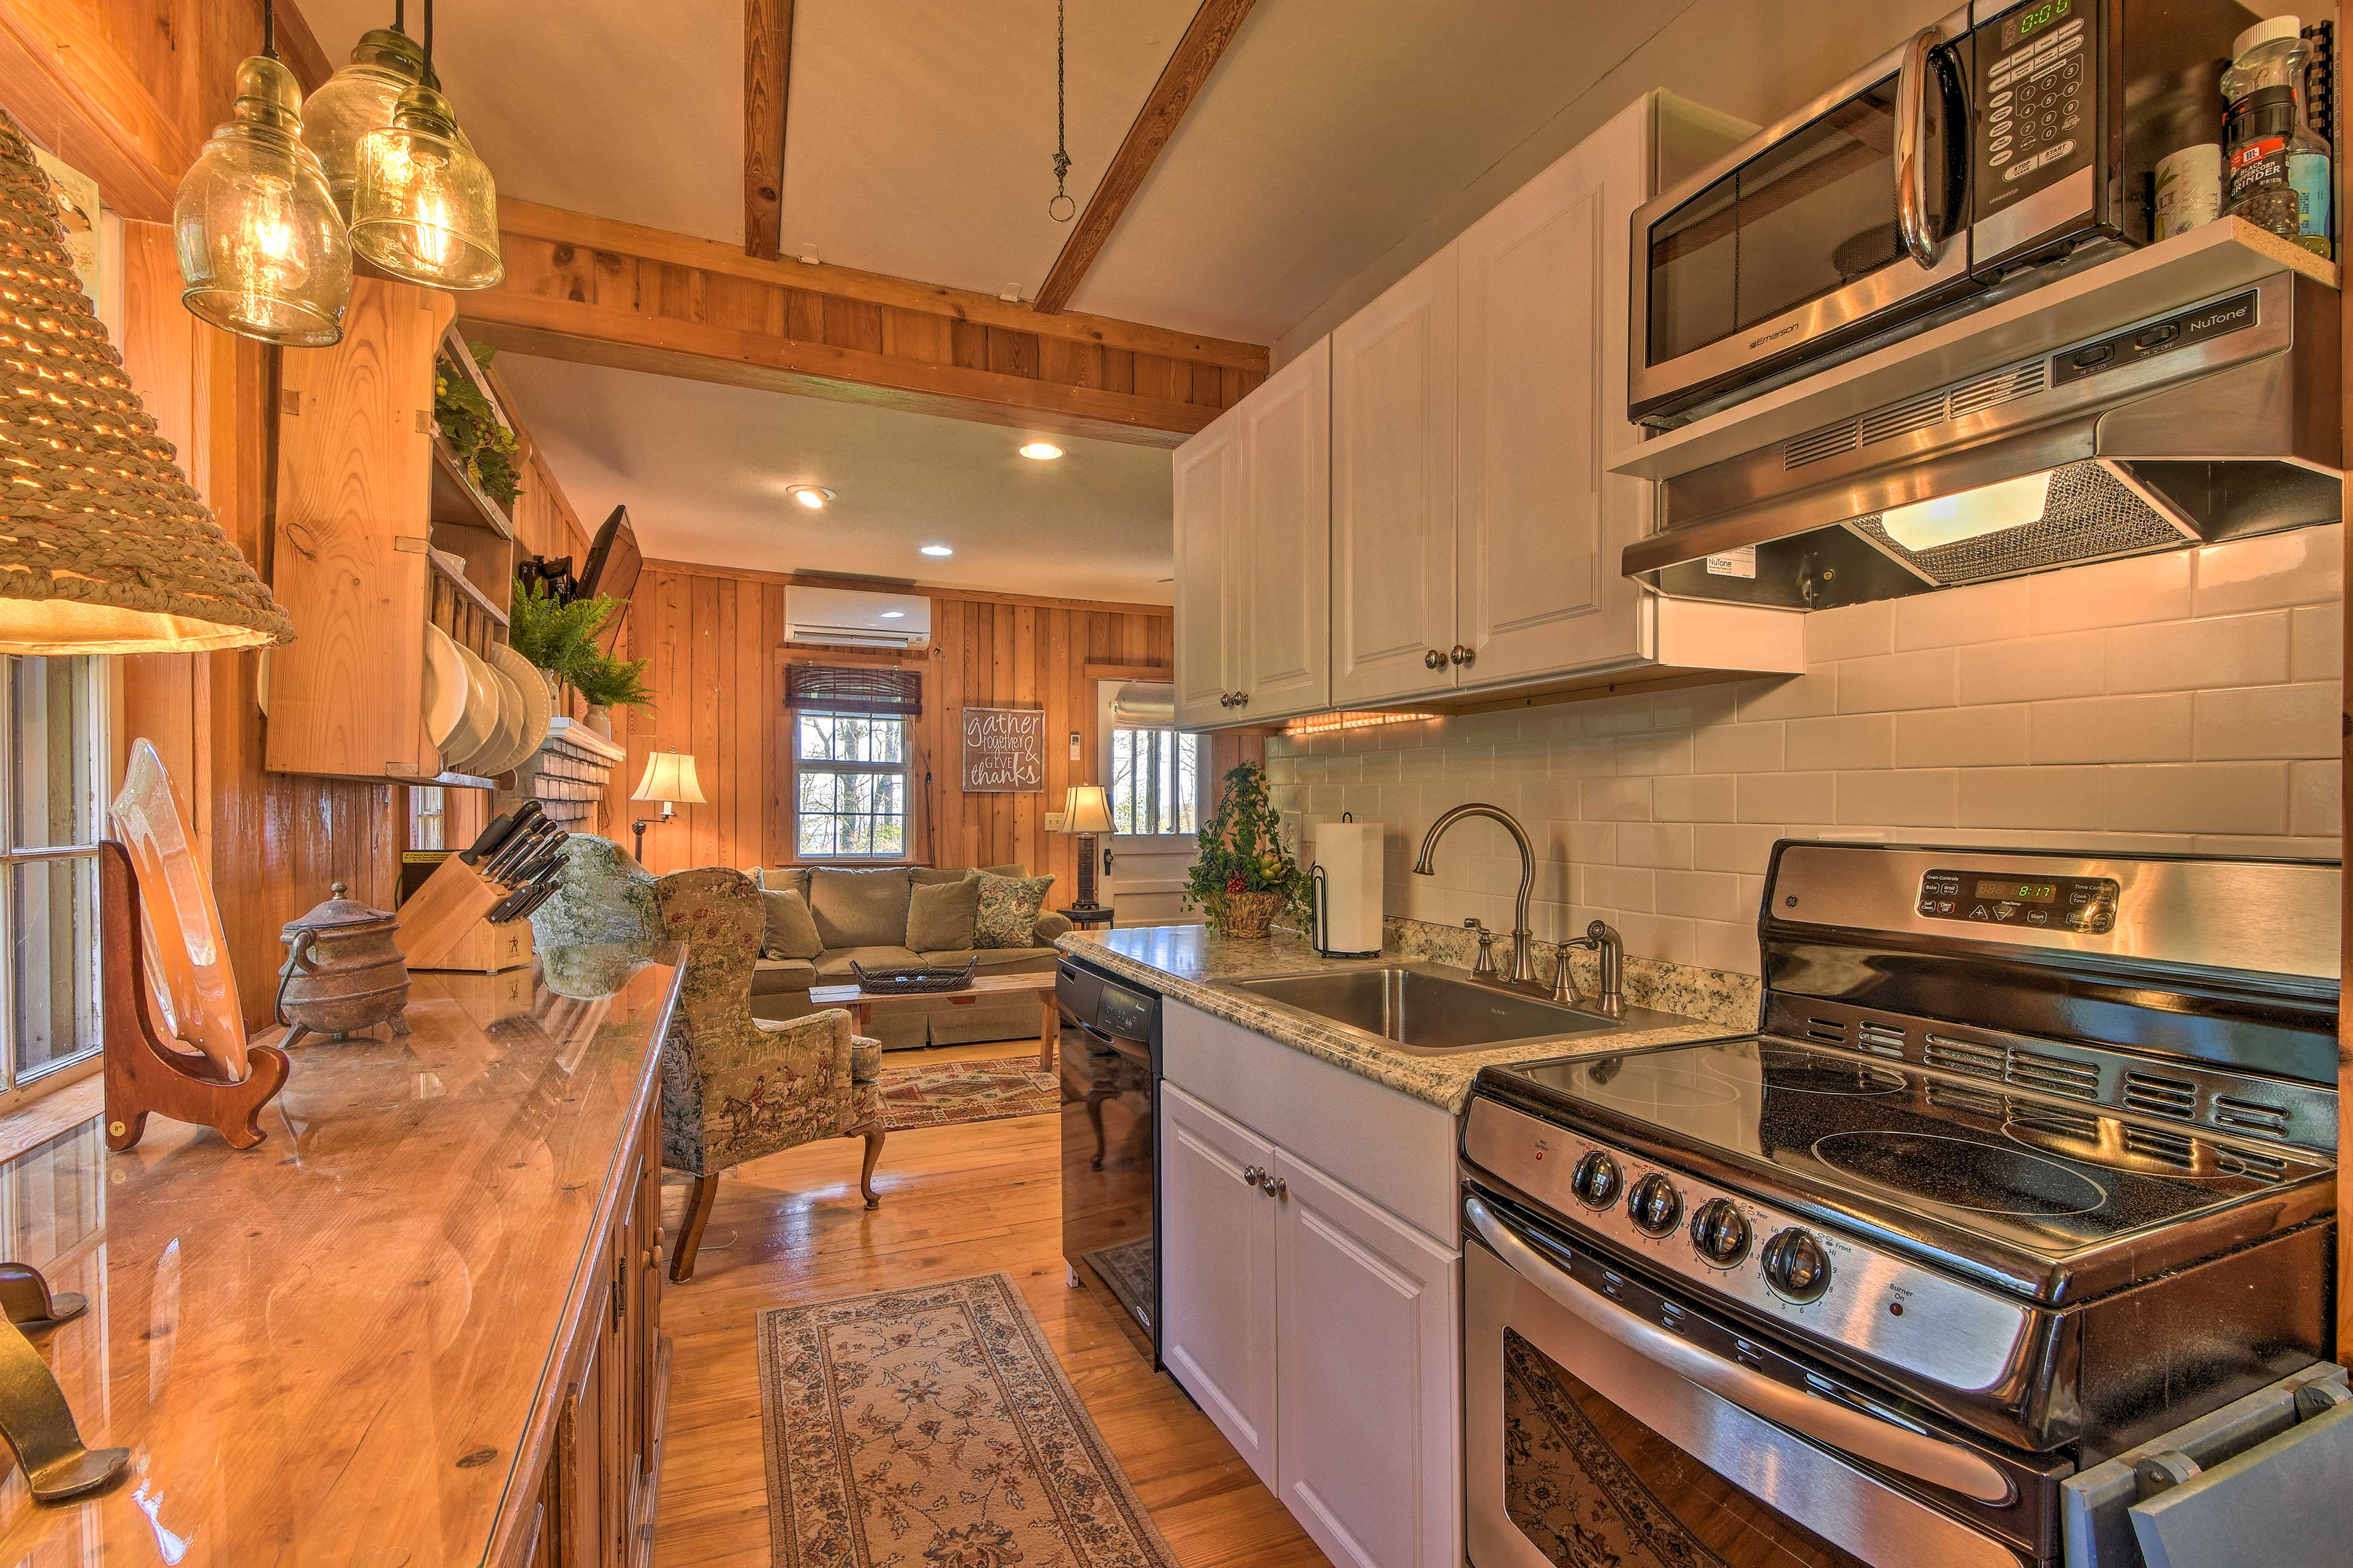 Cook tasty meals for the whole group in the fully equipped kitchen.